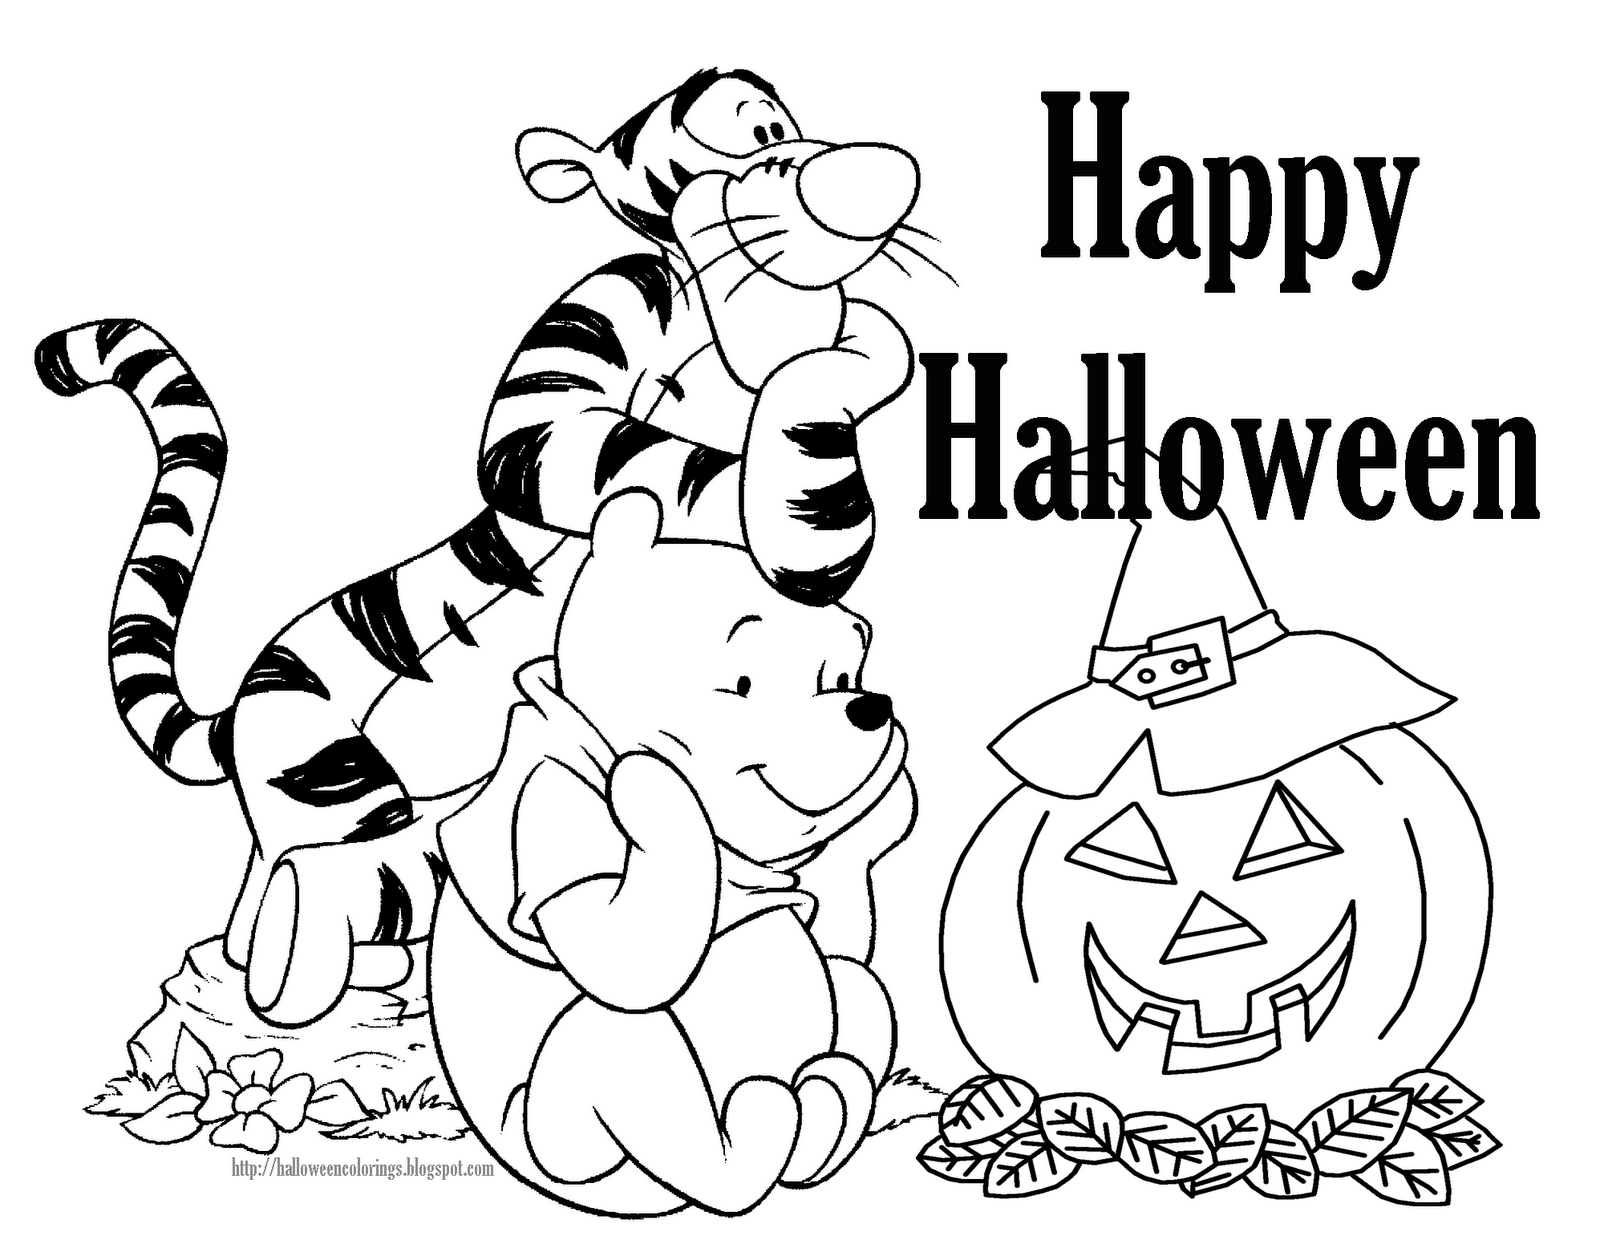 tigger and pooh free disney halloween coloring pages - Halloween Coloring Pages Disney